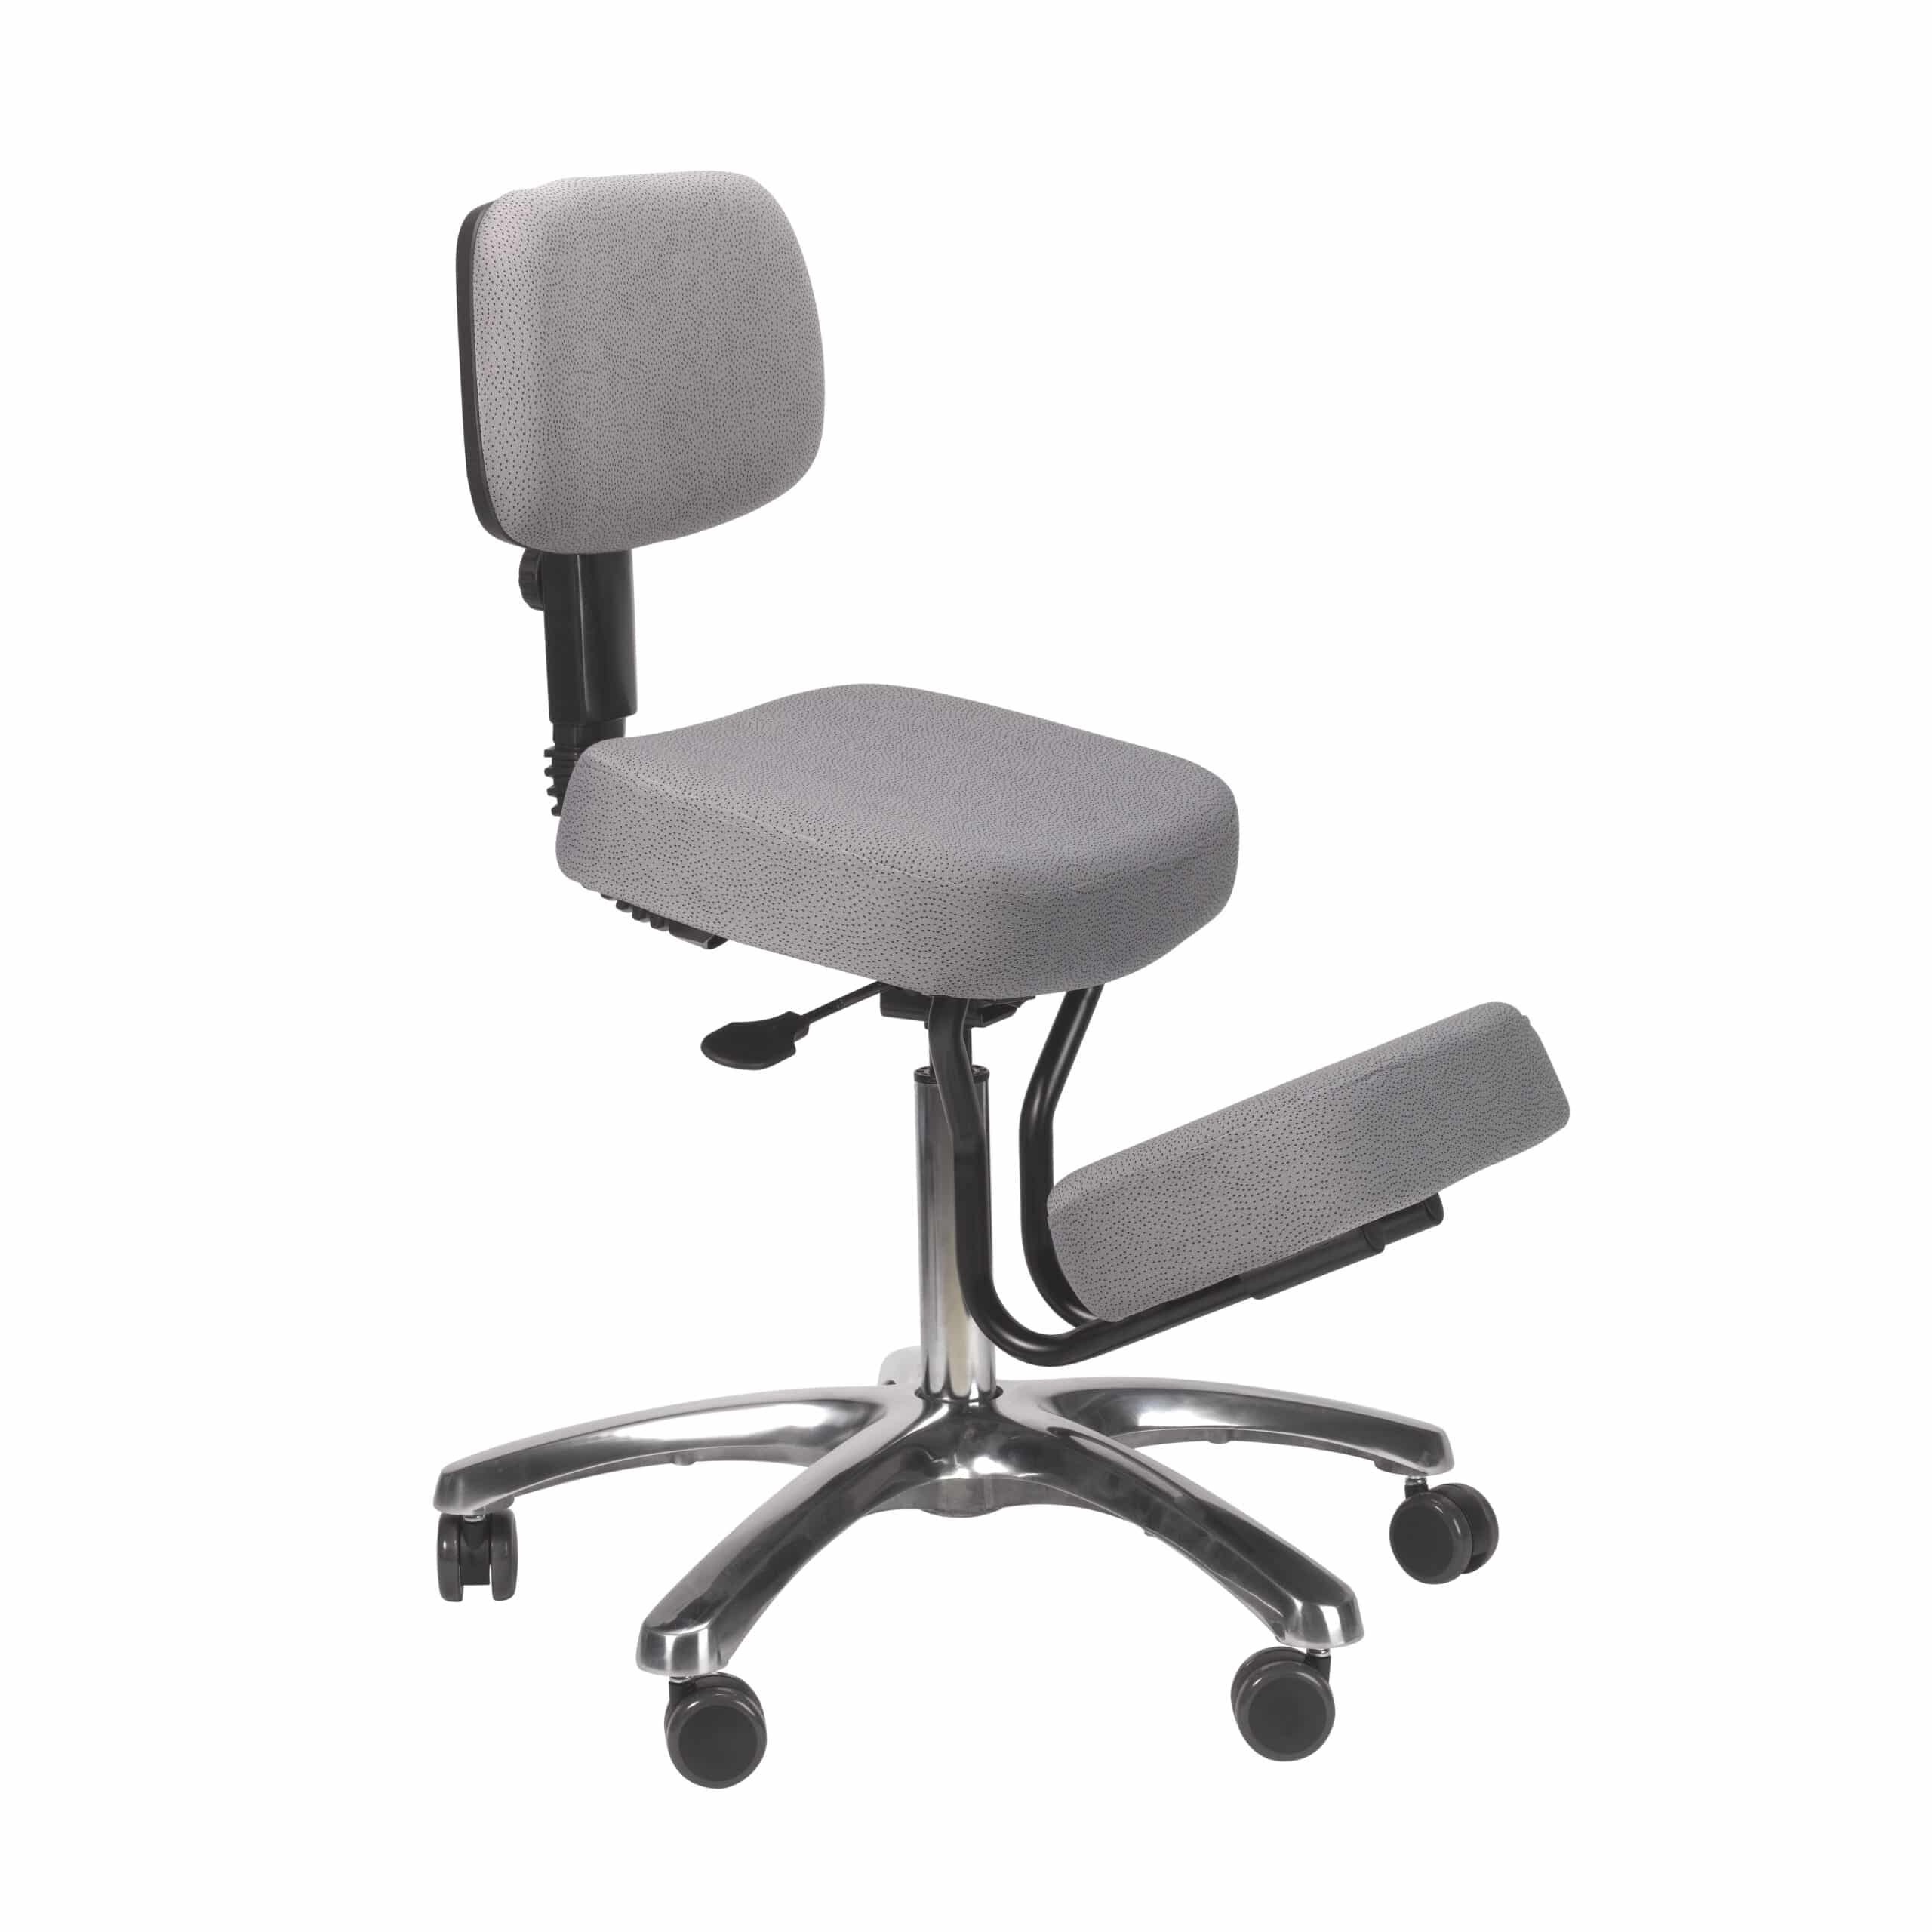 Kneeling Chairs Jazzy Kneeling Chair – Grey – BP1446GR